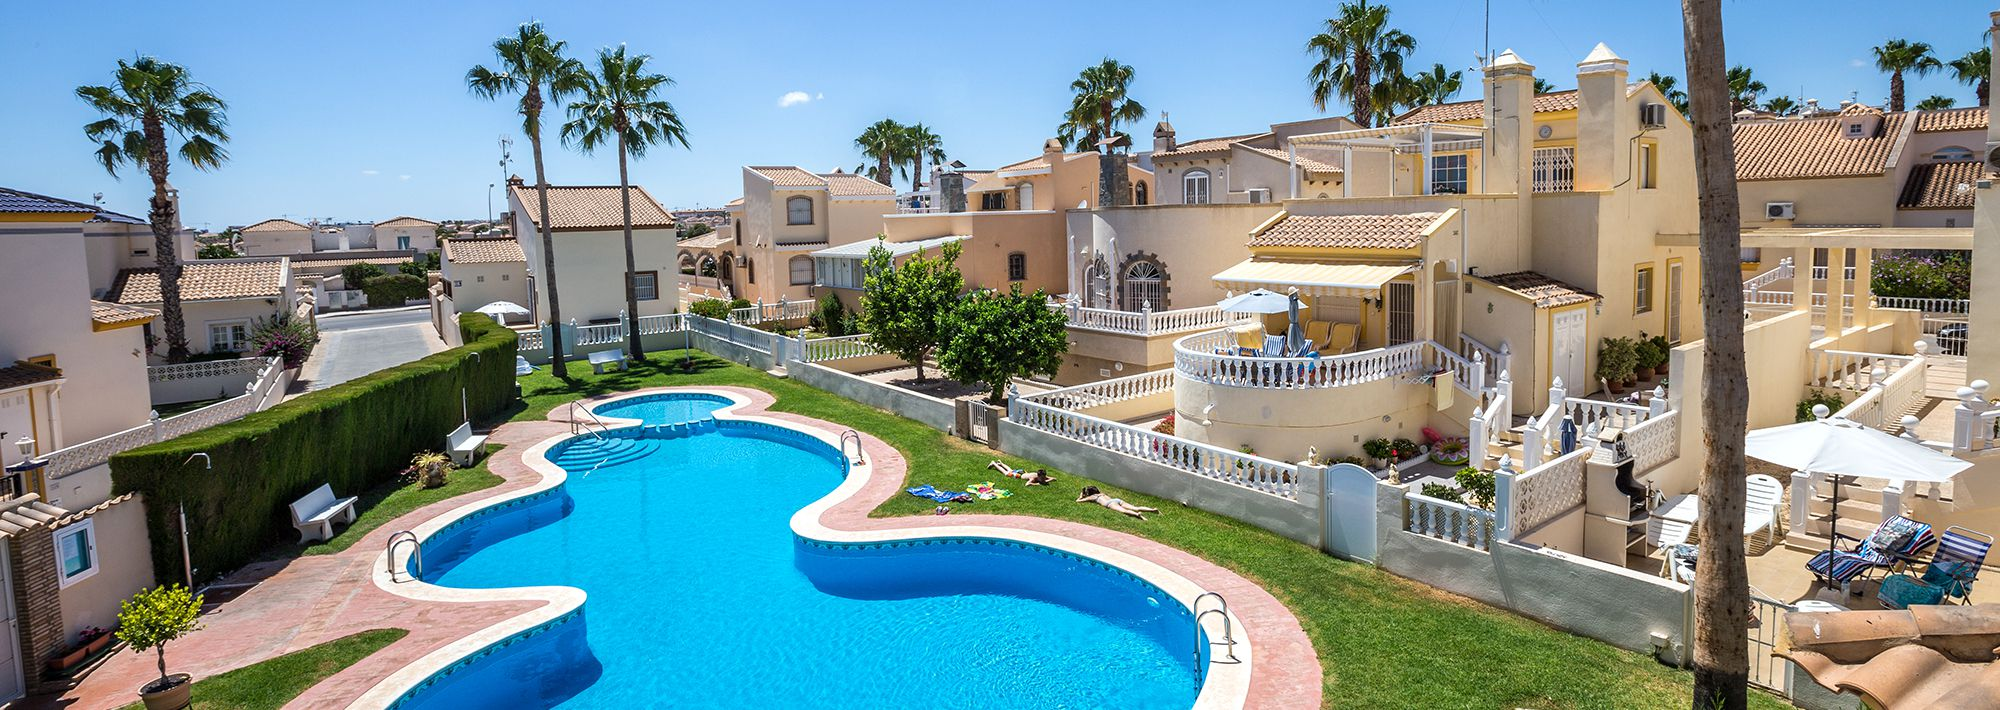 Villas, apartments, and property for sale in Costa Blanca